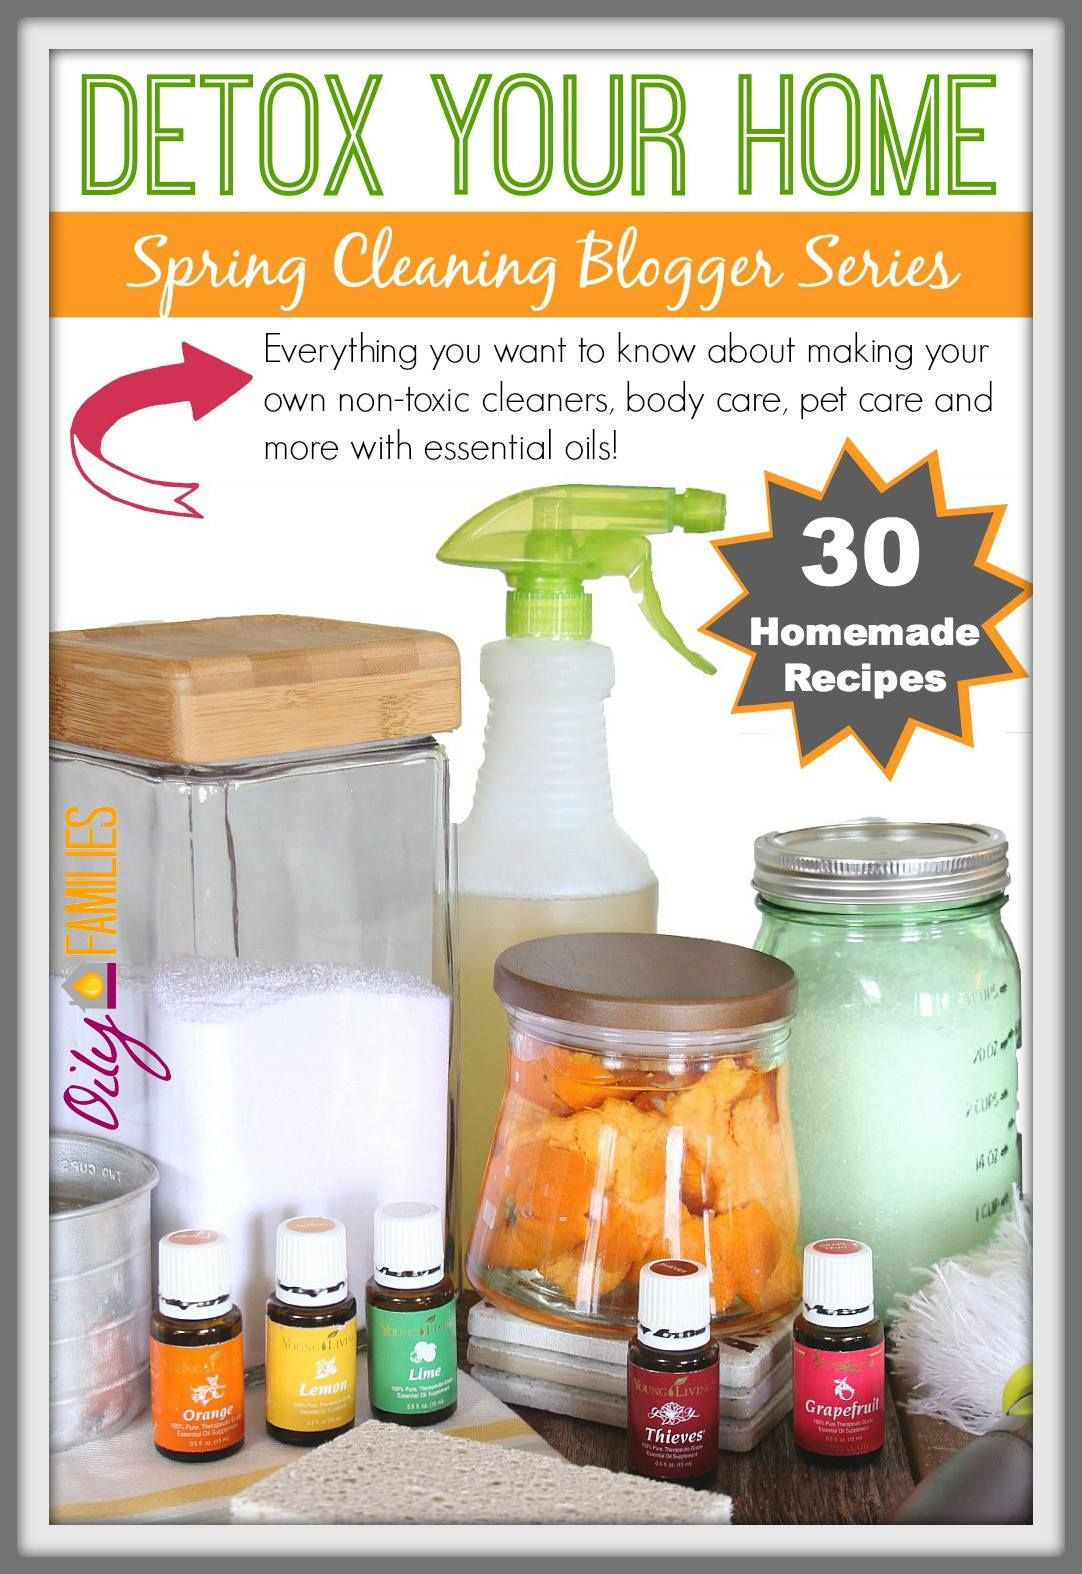 DIY Homemade Oven Cleaner Detox your home, Essential